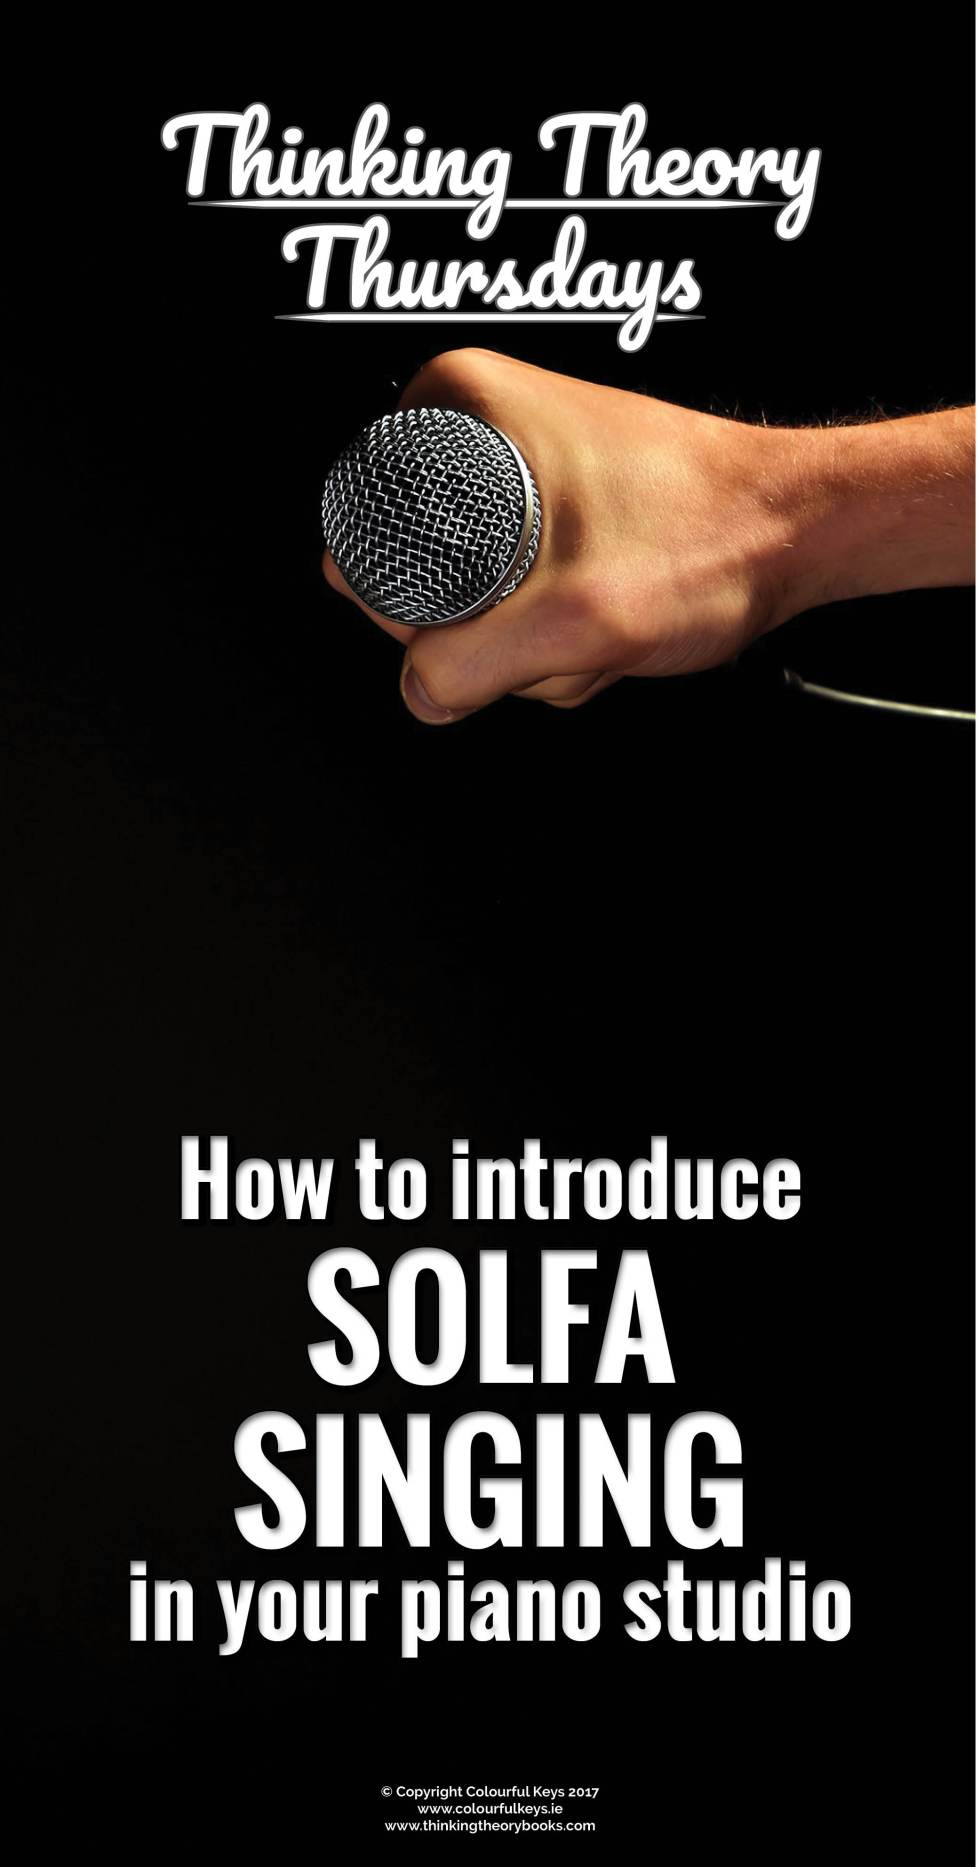 How to bring sight singing into your piano lessons with solfa.